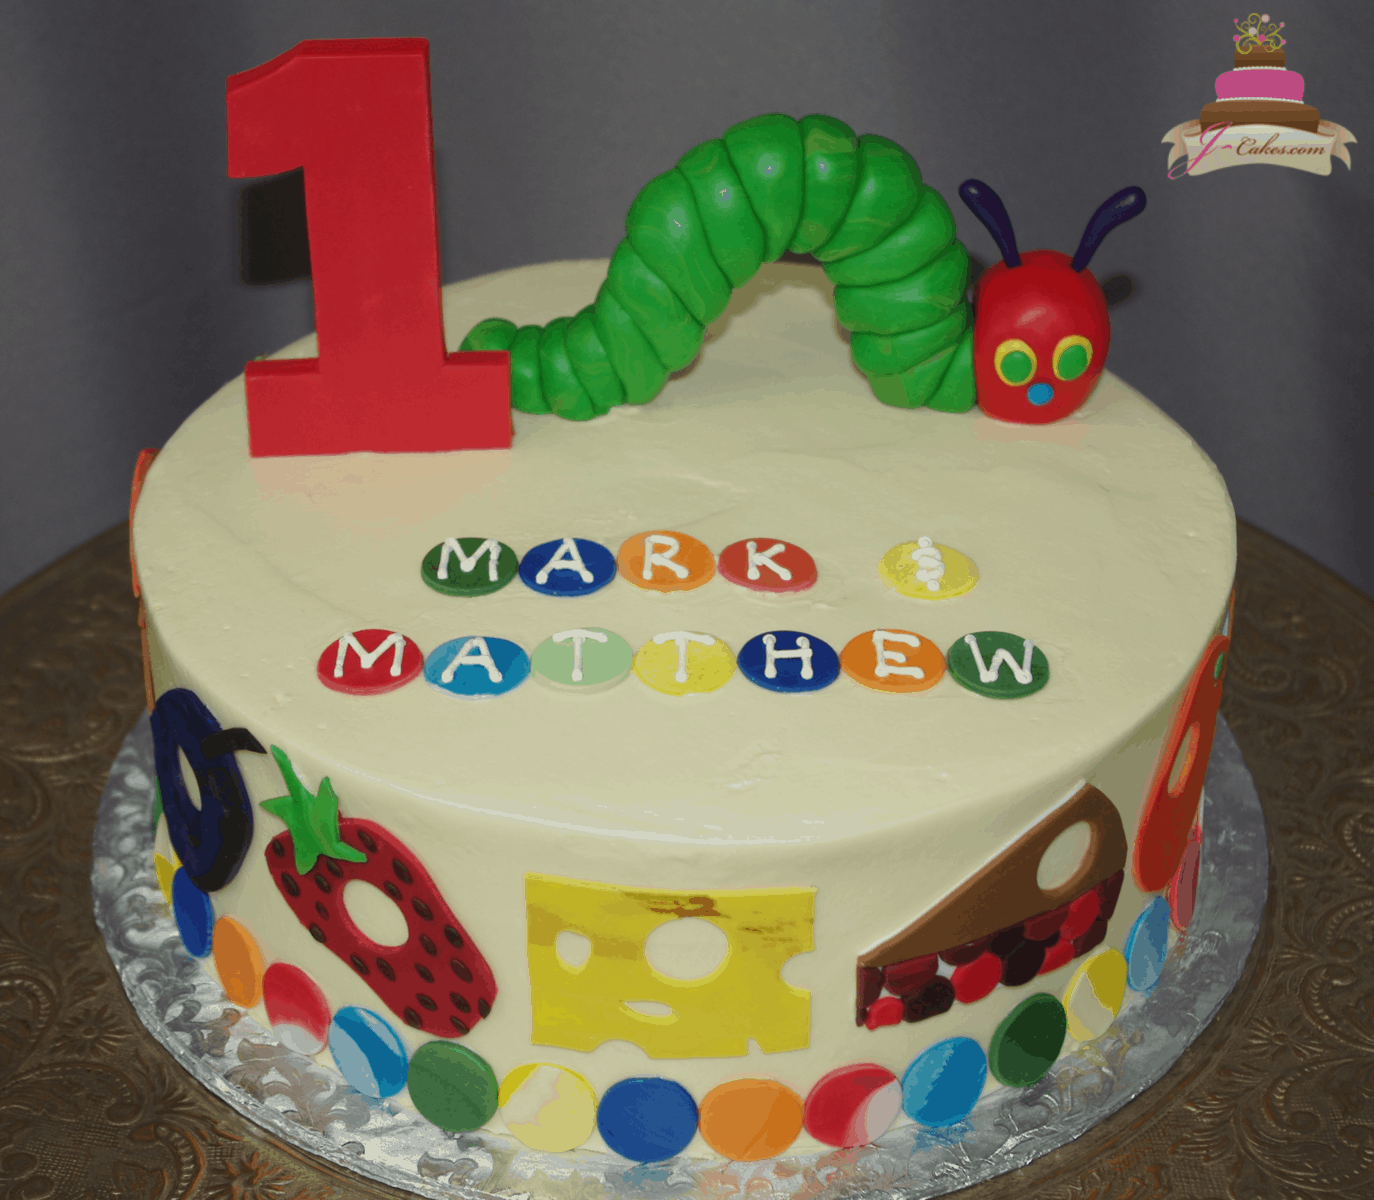 (580) Very Hungry Caterpillar Round Cake